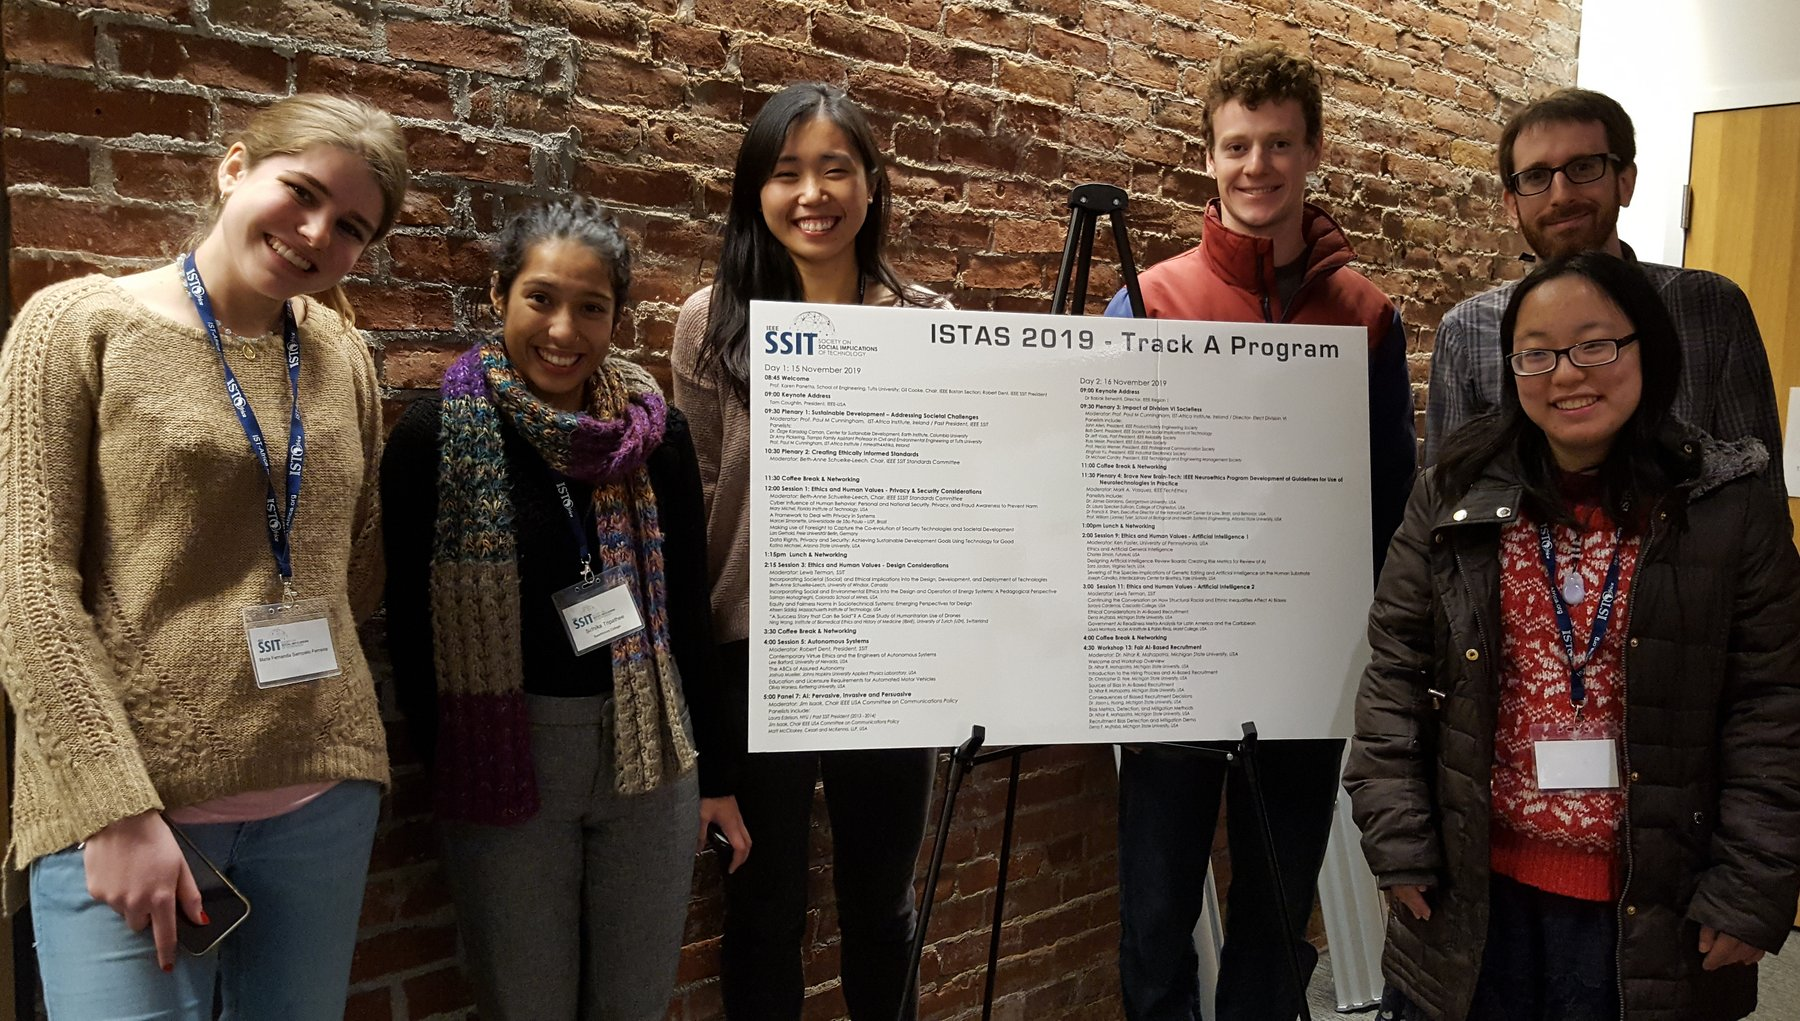 swatcs students at ISTAS conference